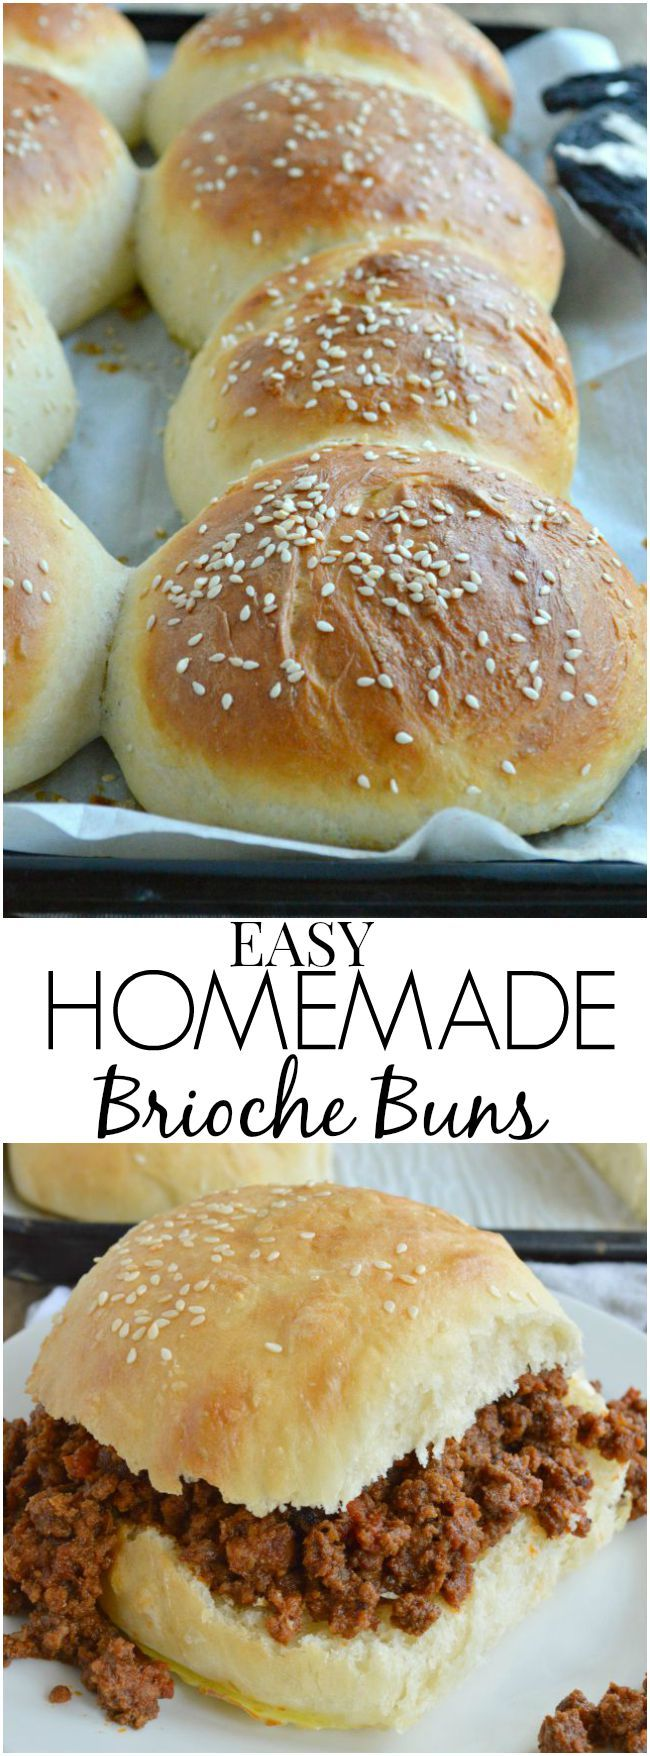 My favorite recipe for big fluffy Homemade Brioche Buns! These are the perfect vehicle for all your burgers and sandwiches. Soft, chewy, carb-a-licious.